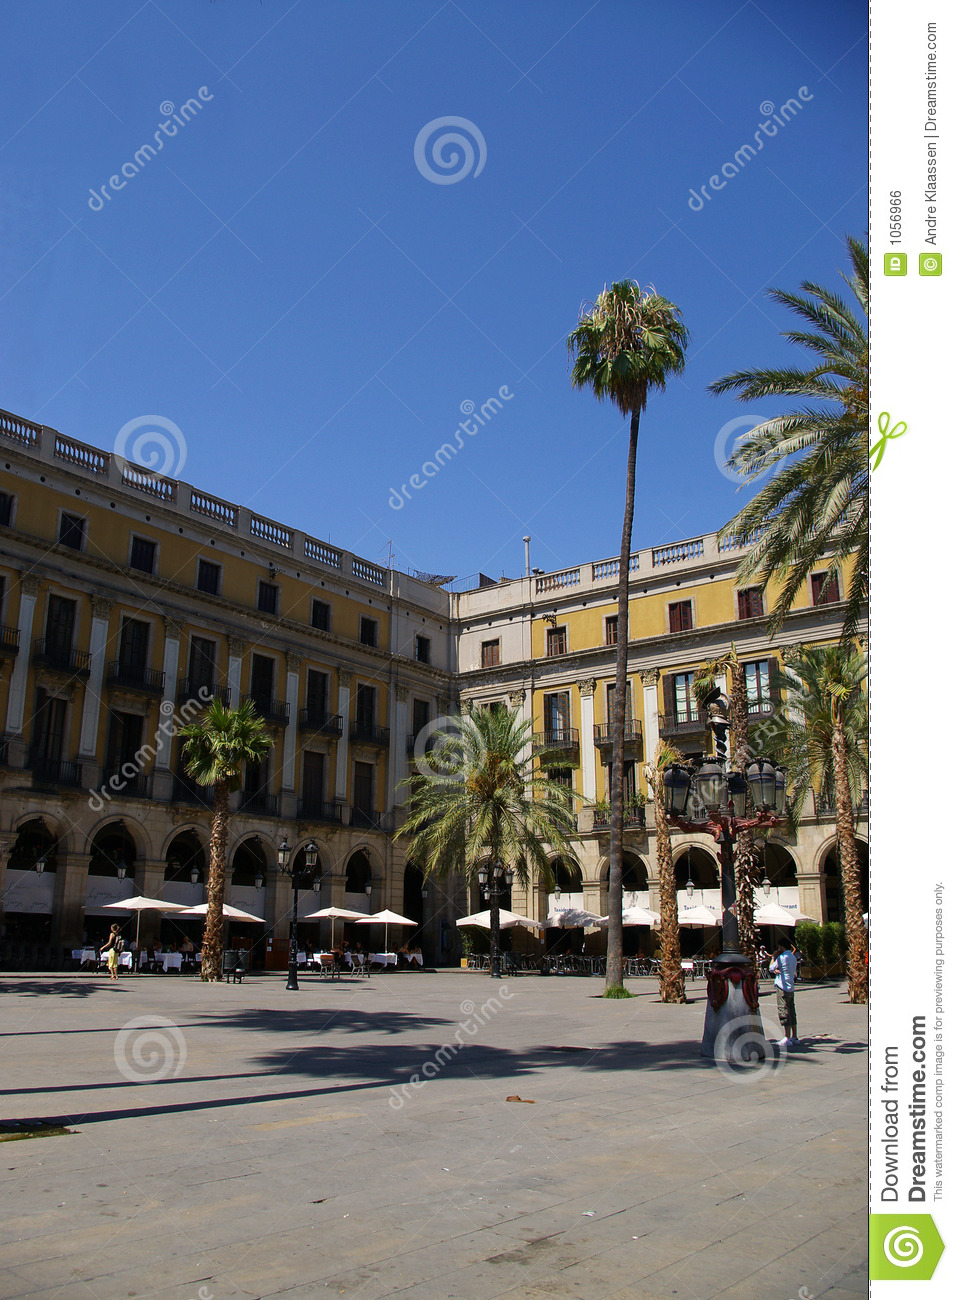 Famous Barcelona Square Royalty Free Stock Image  Image